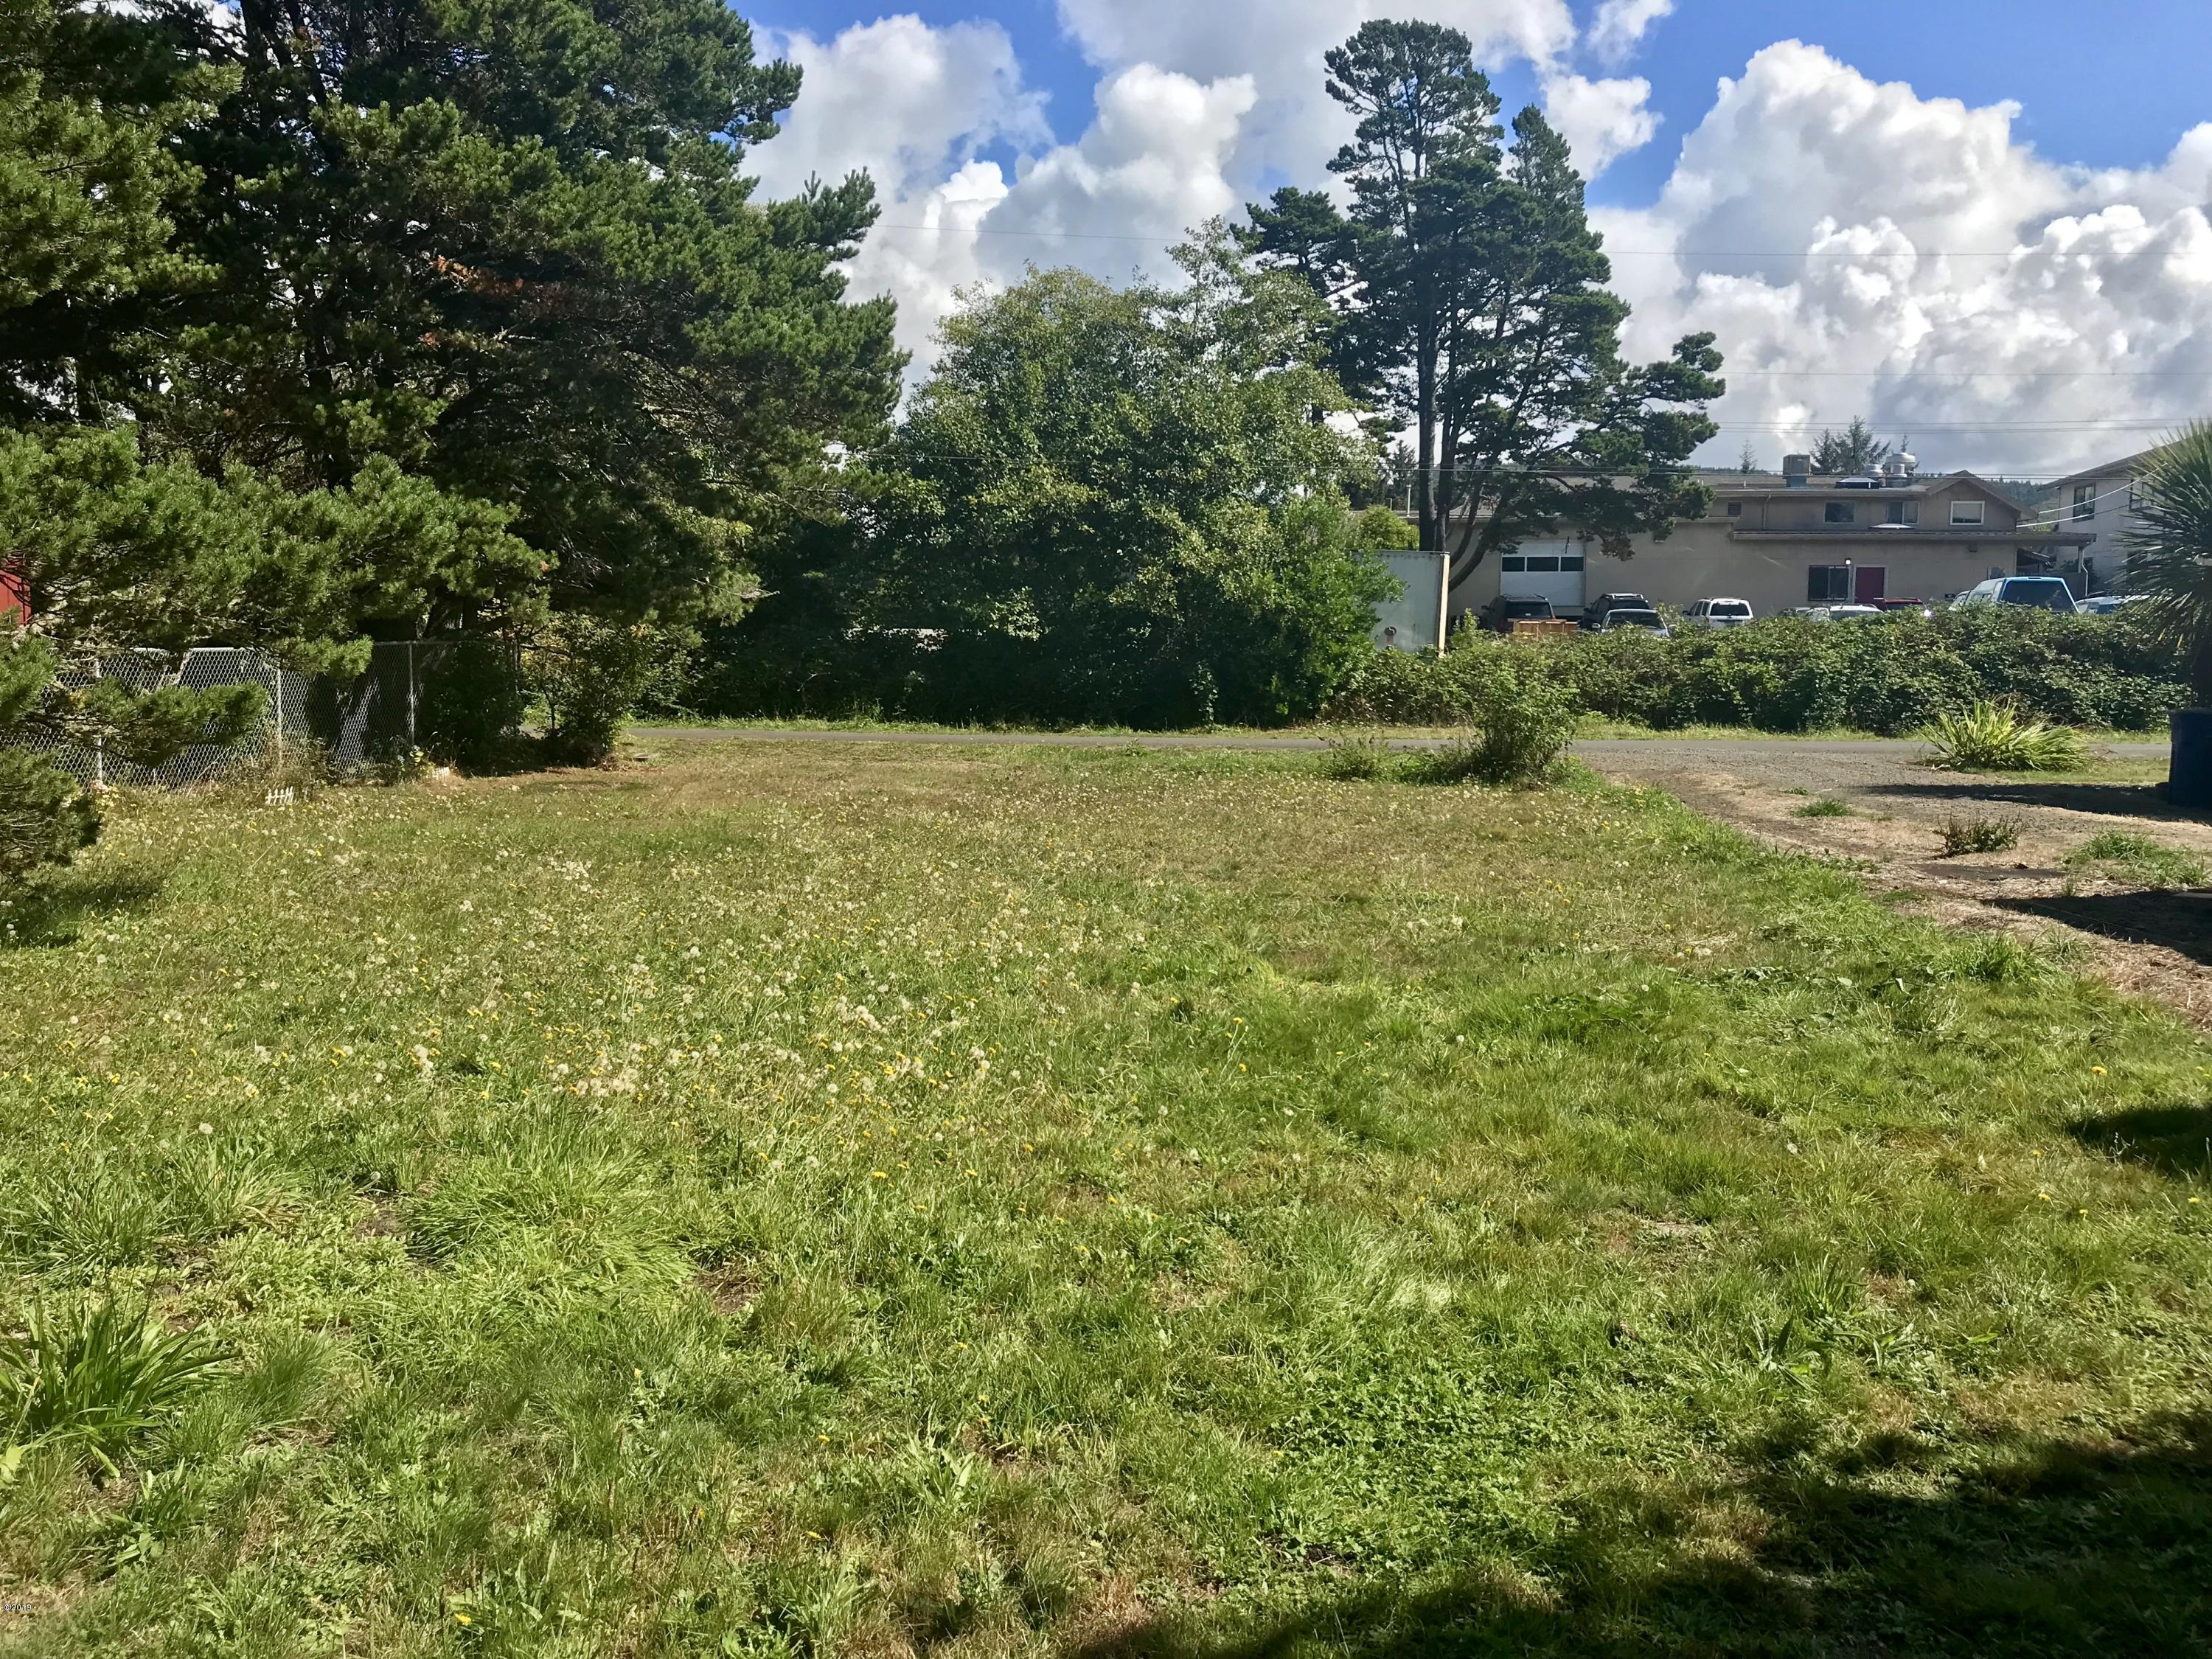 LOT 2 Rhododendron Ave, Gleneden Beach, OR 97388 - View from back of lot to Rhododendron